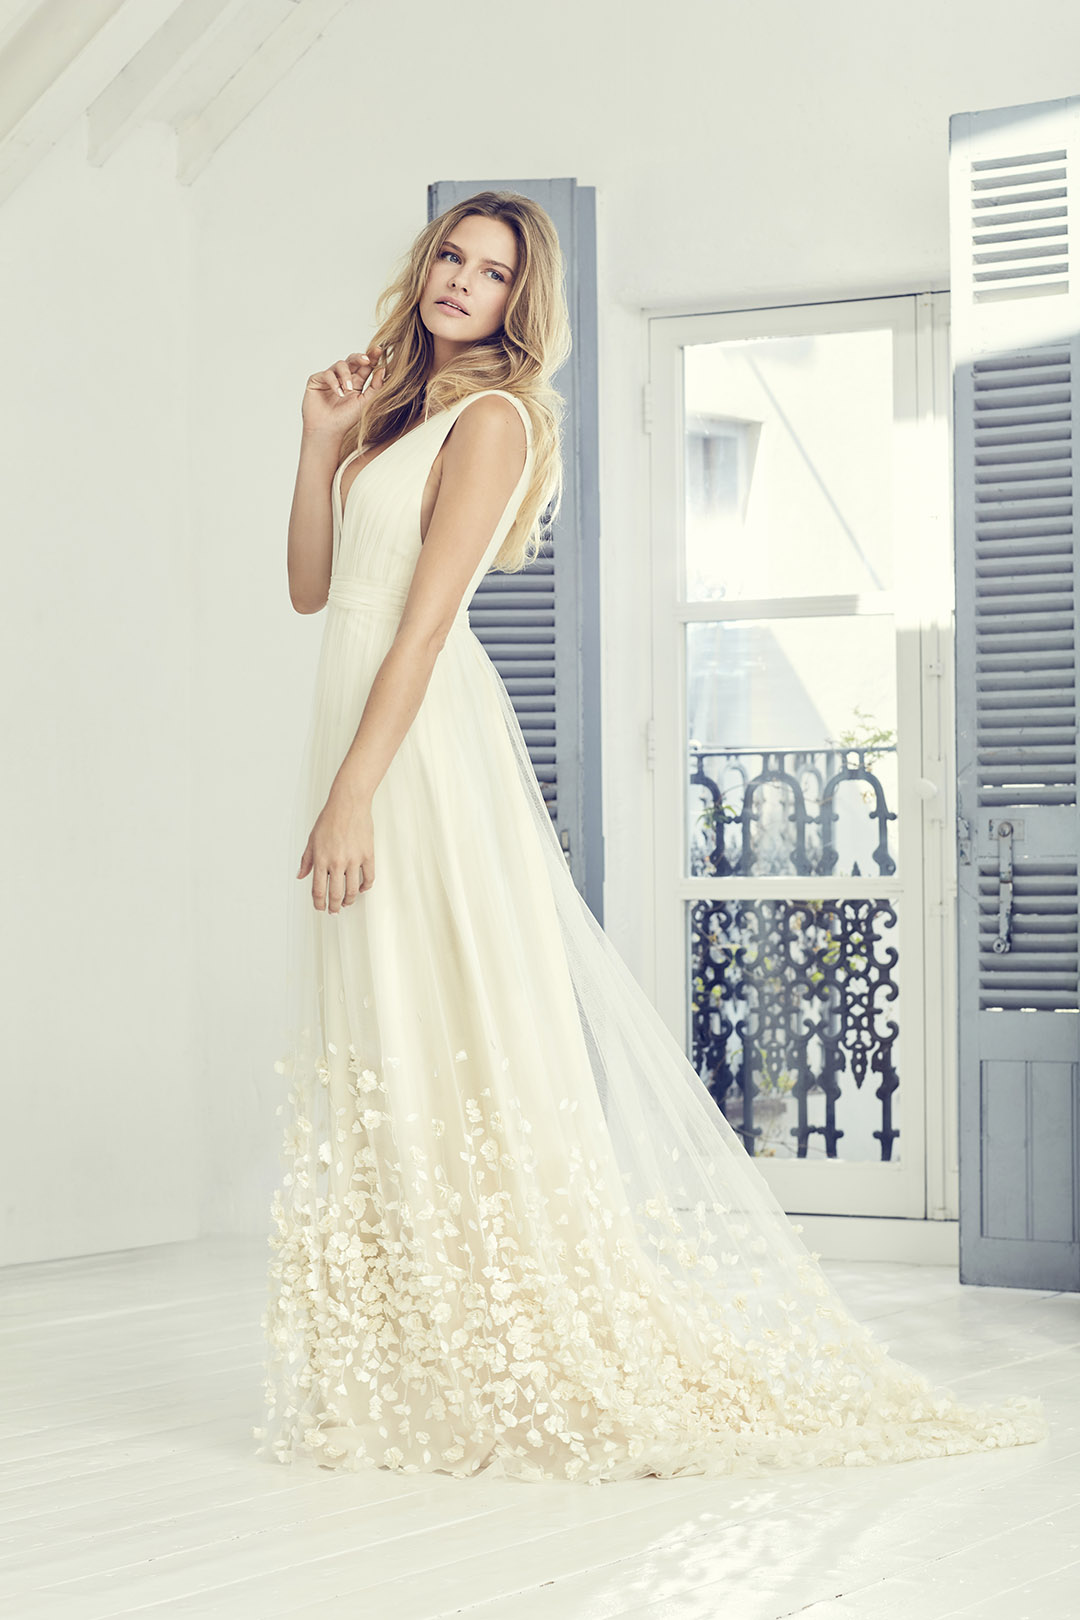 lisette1-wedding-dresses-uk-suzanne-neville-collection-hd-2019